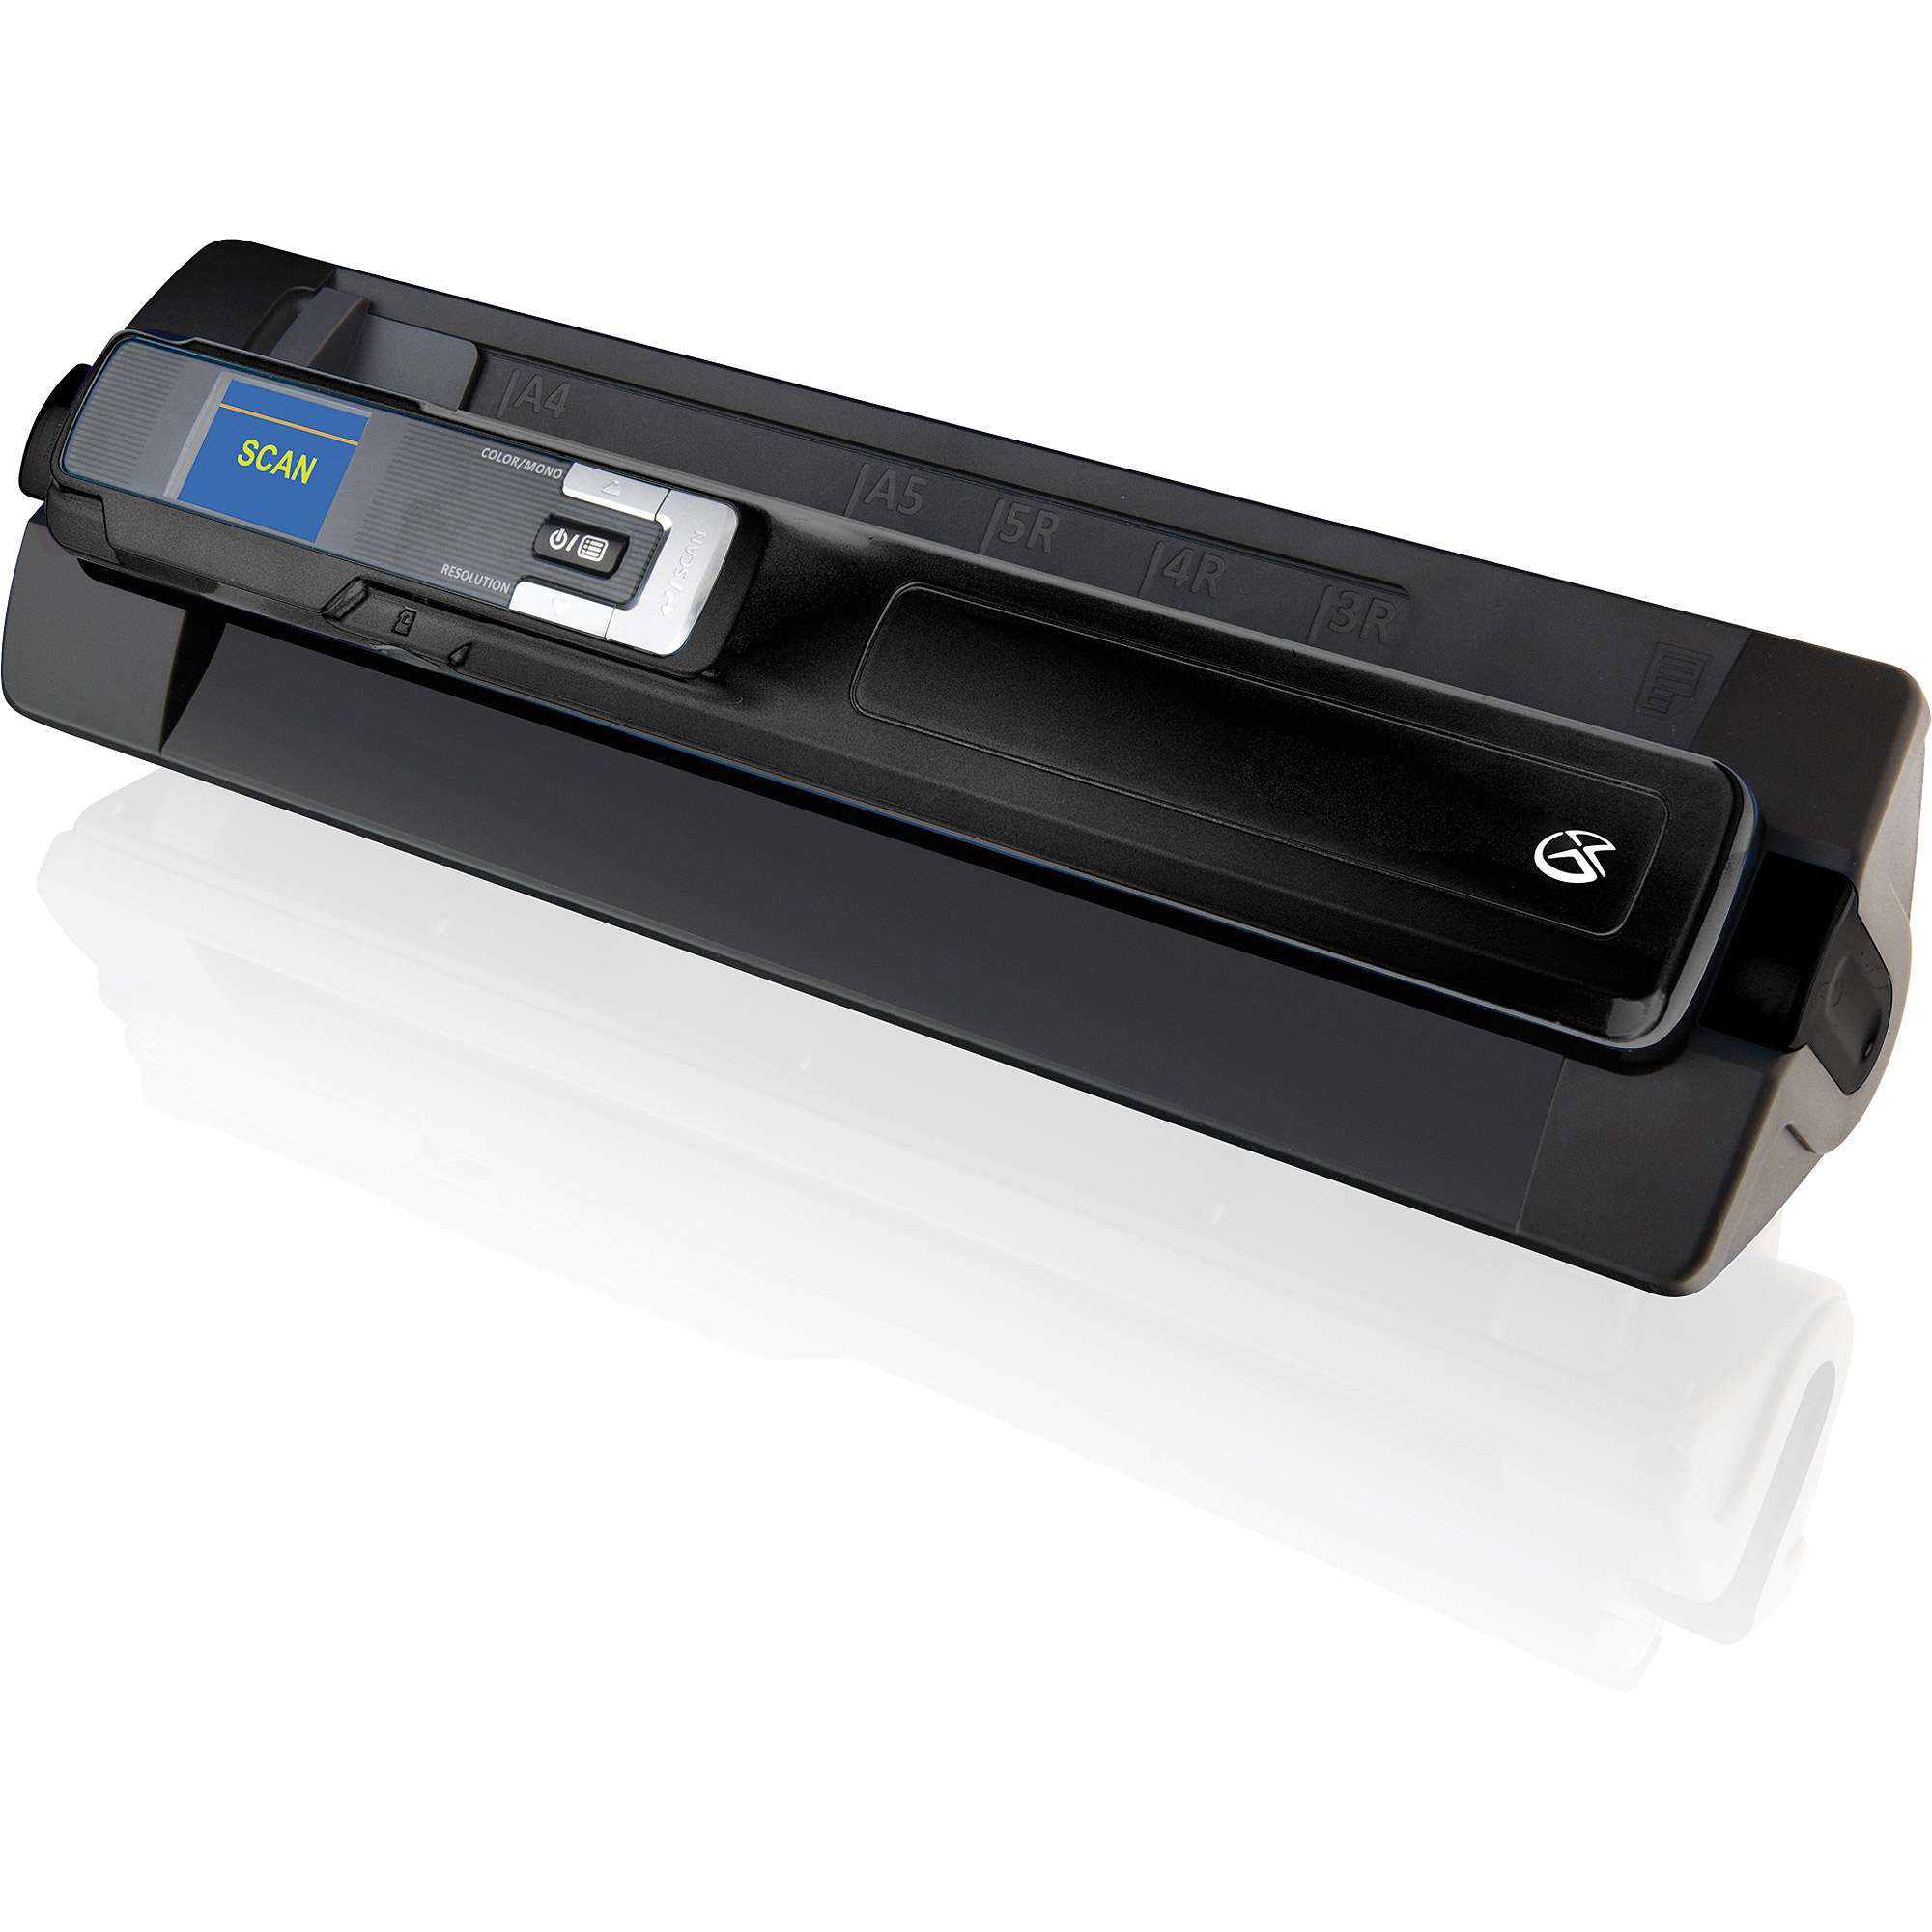 GPX Portable Photo/Document Scanner with Docking Station